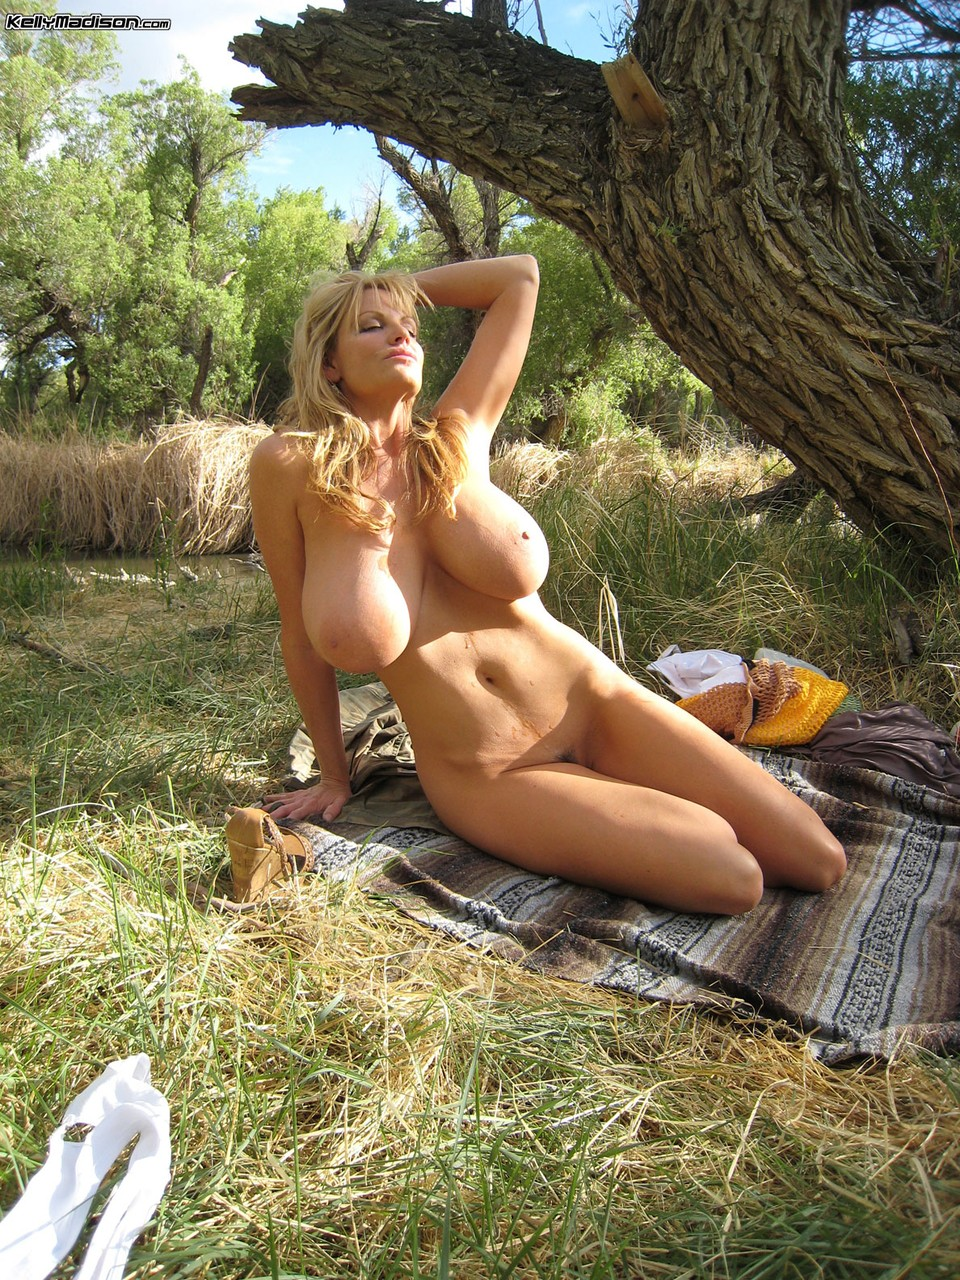 Stunning MILF with fantastic breasts Kelly Madison stripping by the river